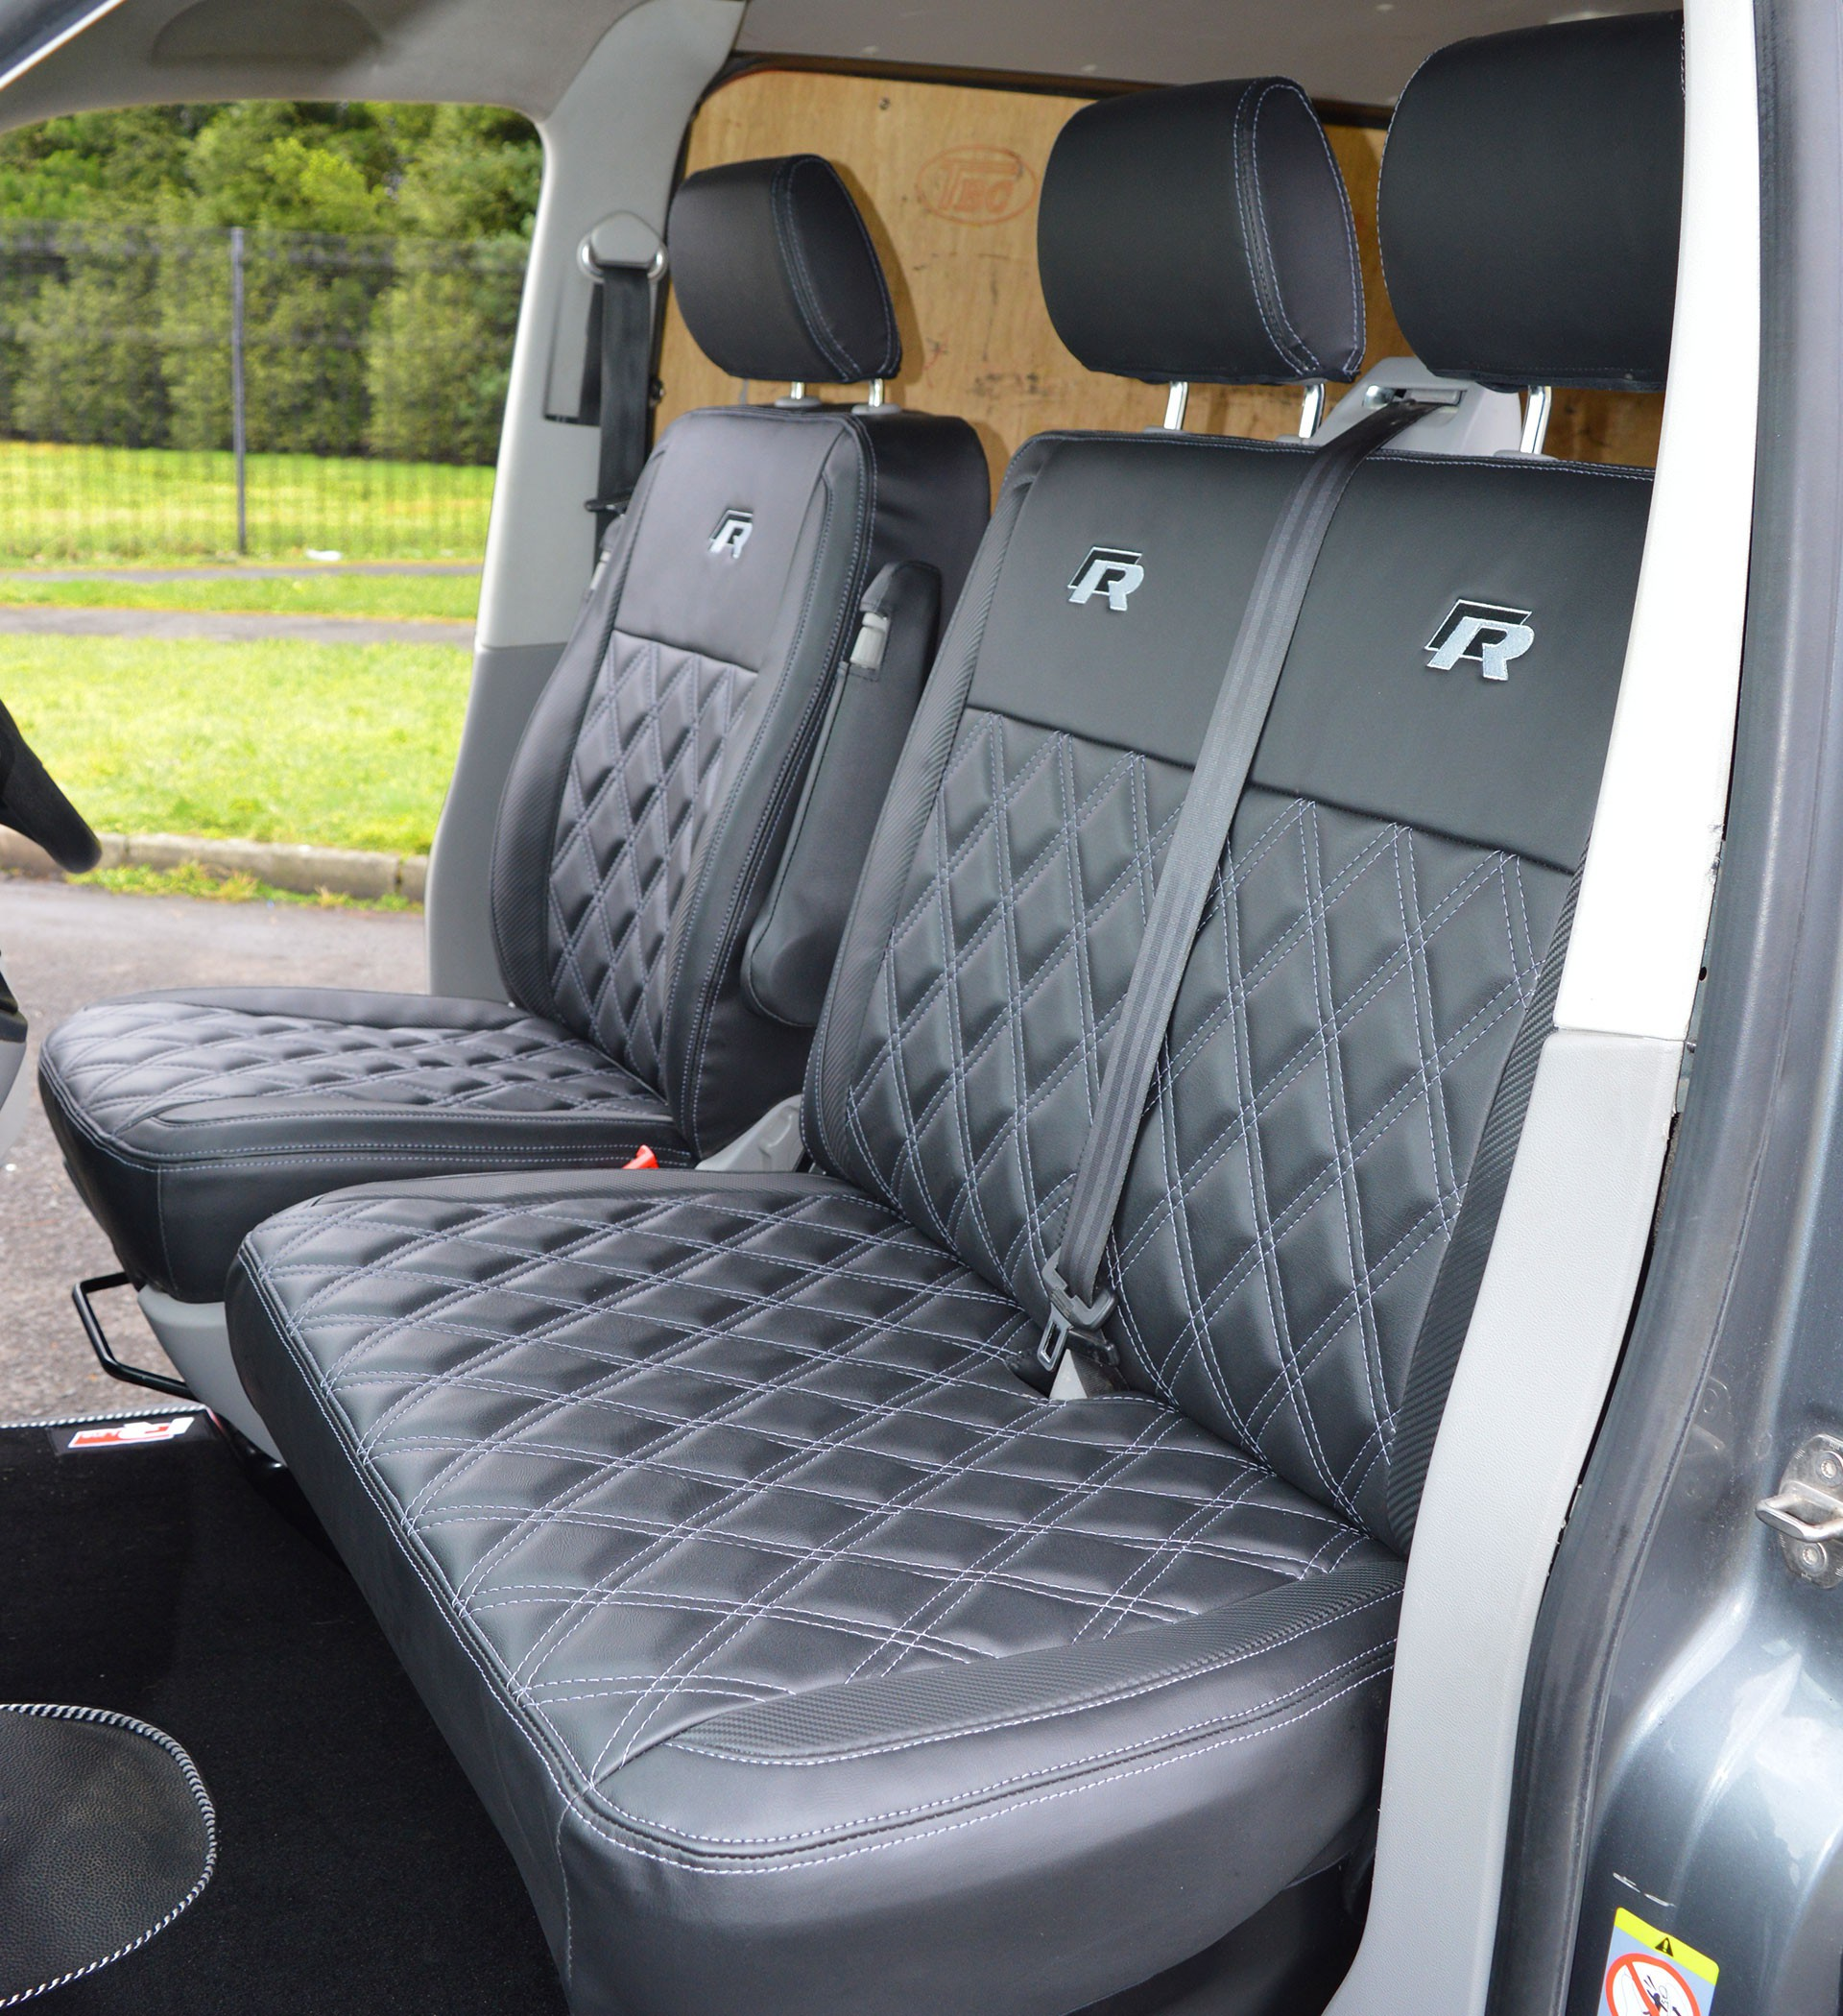 Volkswagen Transporter T6 R Line Tailored Van Seat Covers